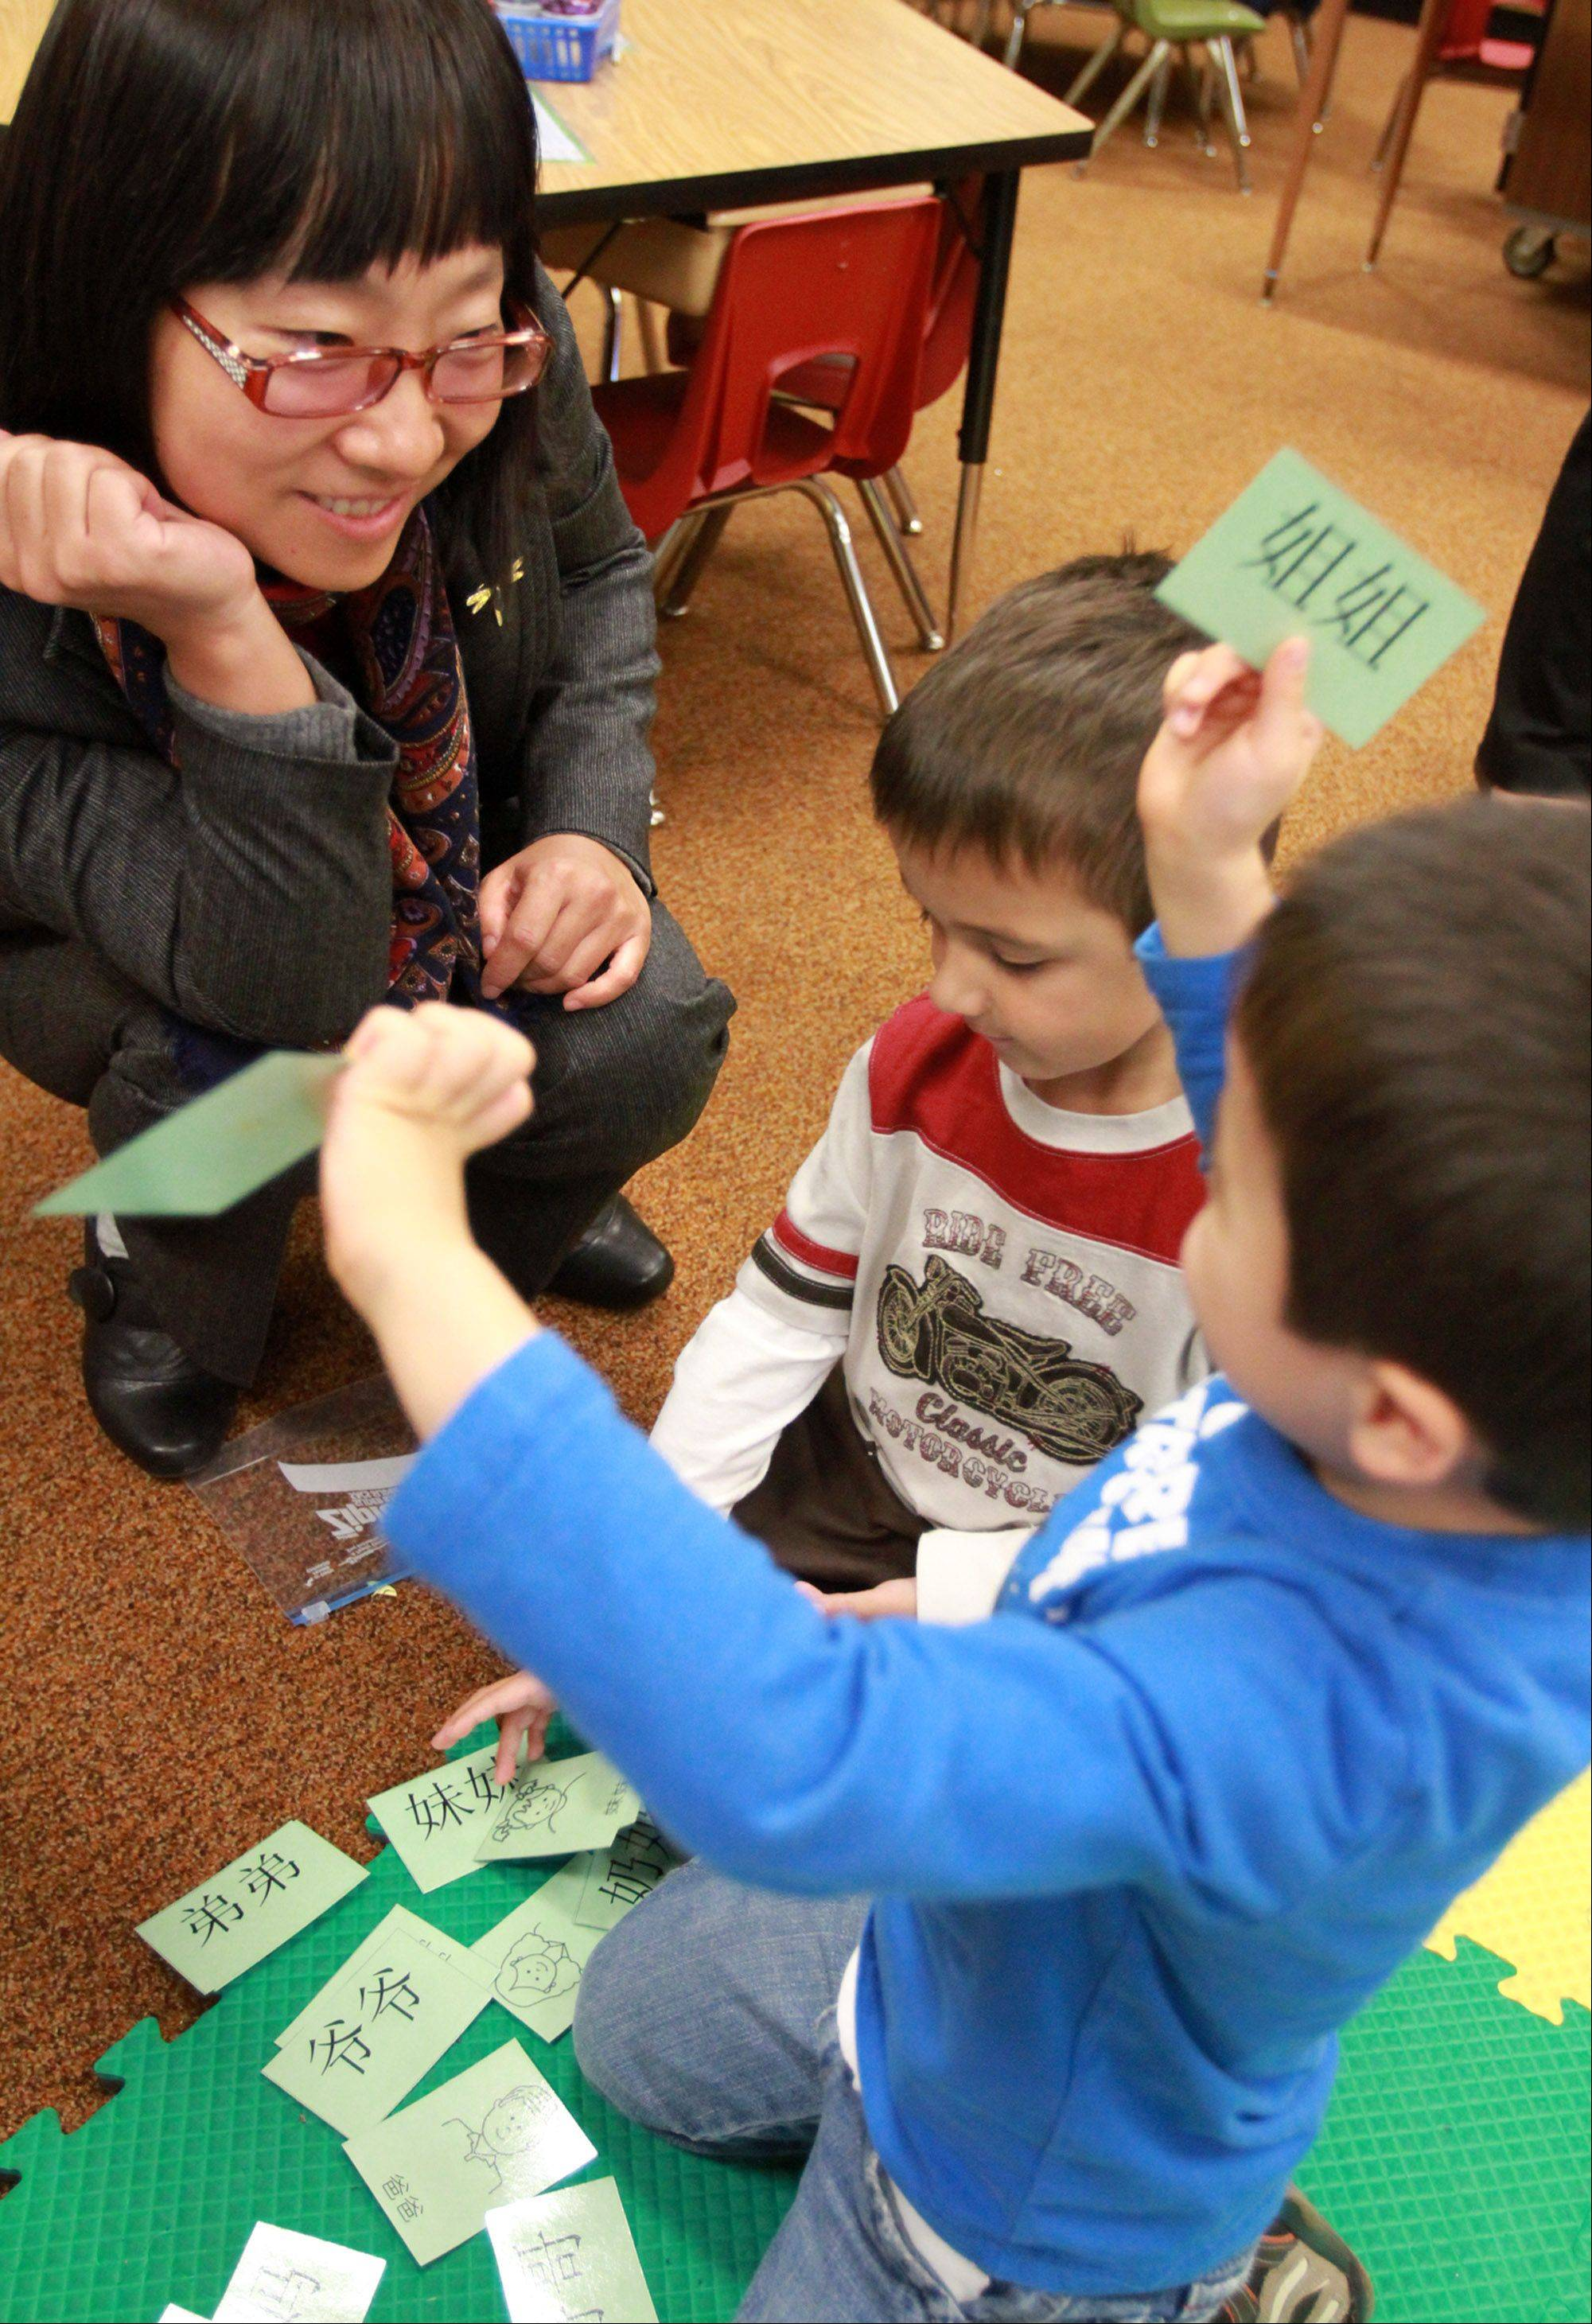 Campanelli Elementary School kindergartners Scott Gilbert, foreground, and Samuel Salazar show Chinese language learning cards Thursday to Sara Gao, division chief with Population and Family Planning Bureau of Guangzhou Municipality as she and other government visitors from Guangzhou, China visit the Schaumburg school.